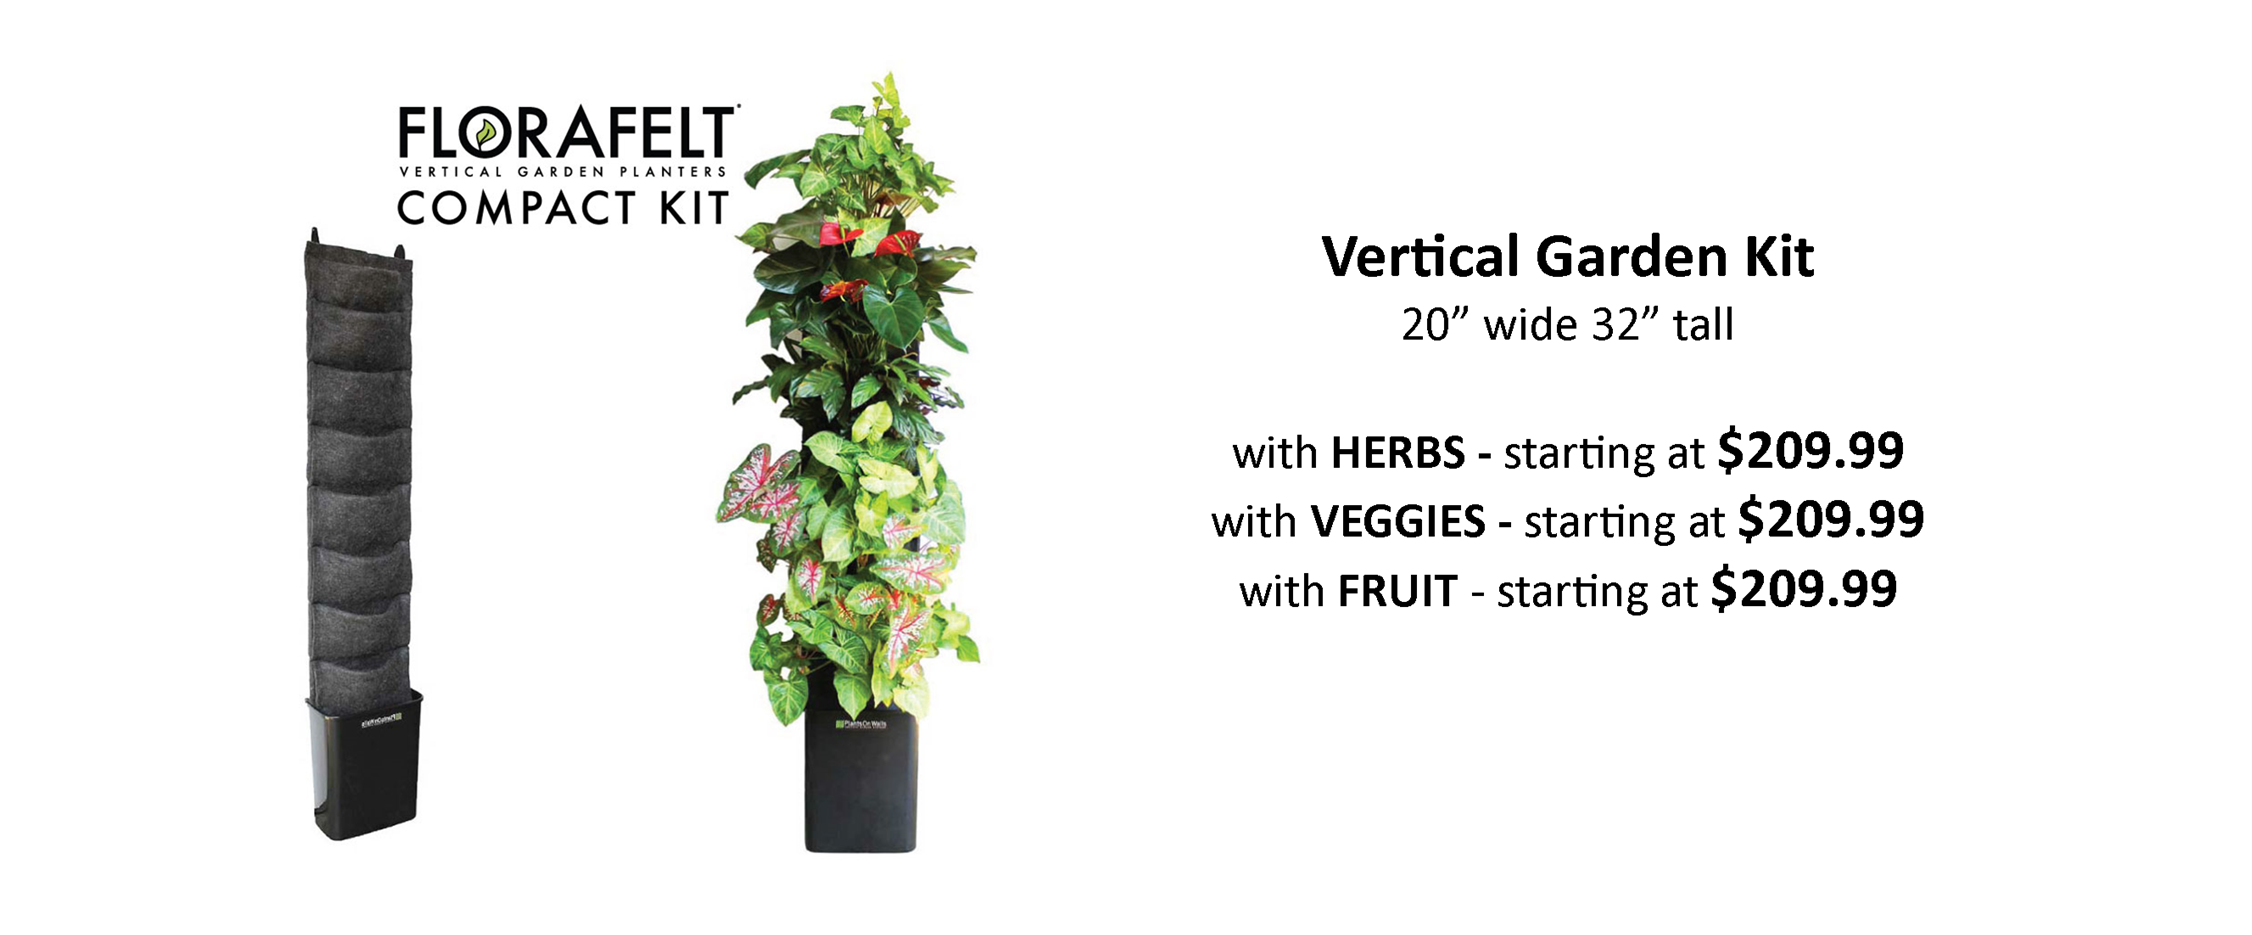 Automatically Water Vertical Garden Kit Pre Planted with Herbs, Veggies and Fruit